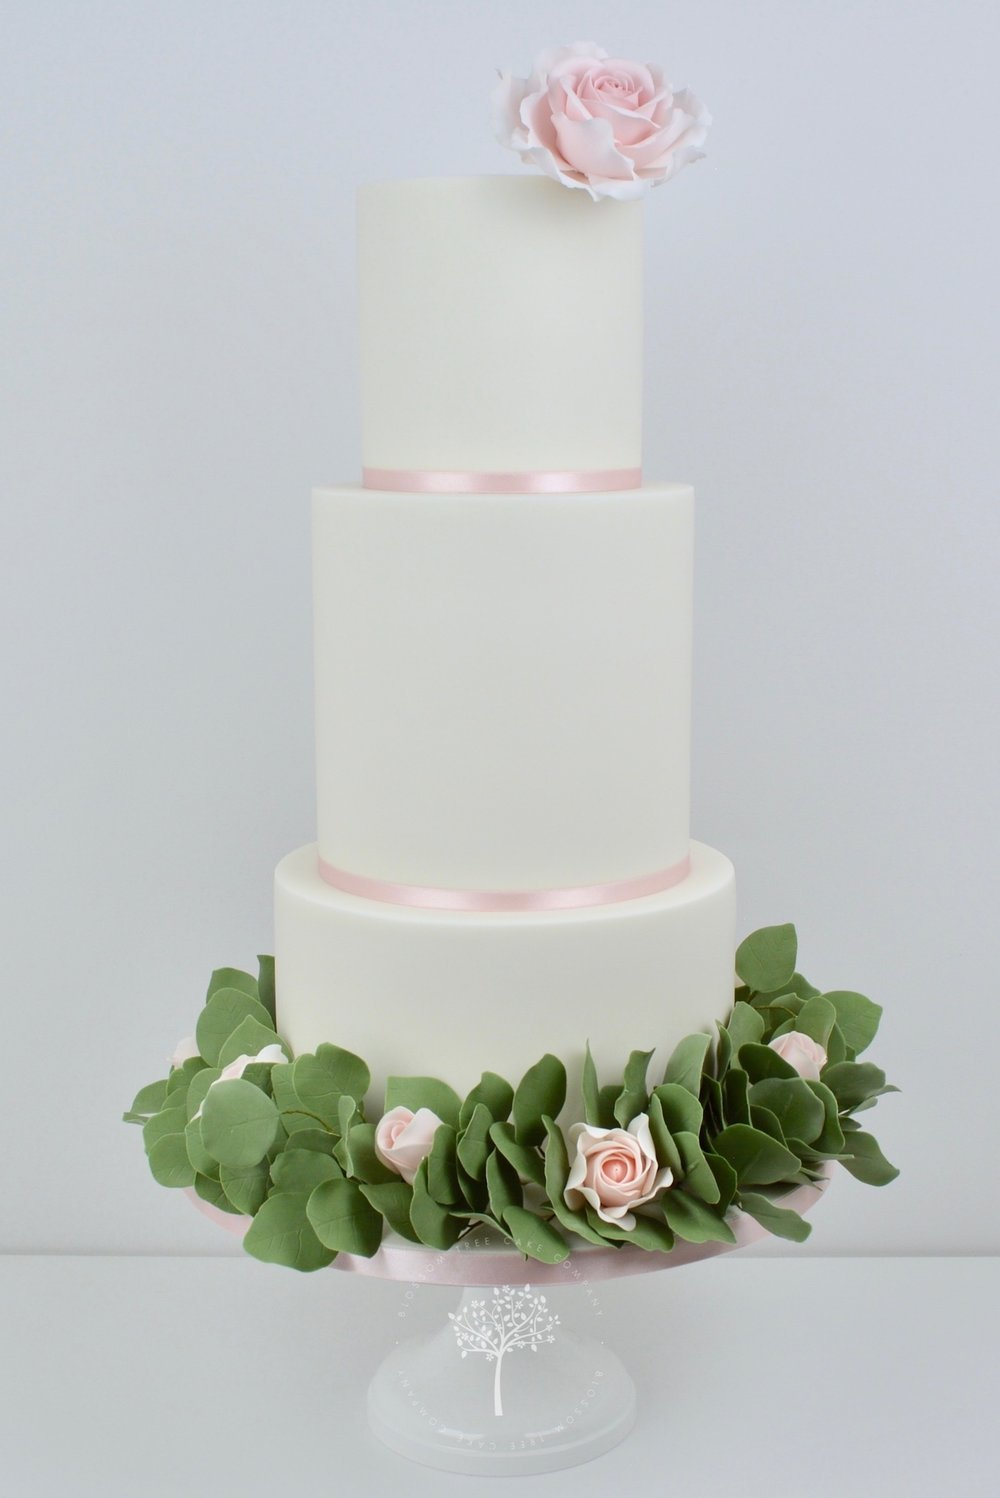 Roses and Silver Dollar wedding cake by Blossom Tree Cake Company.jpg